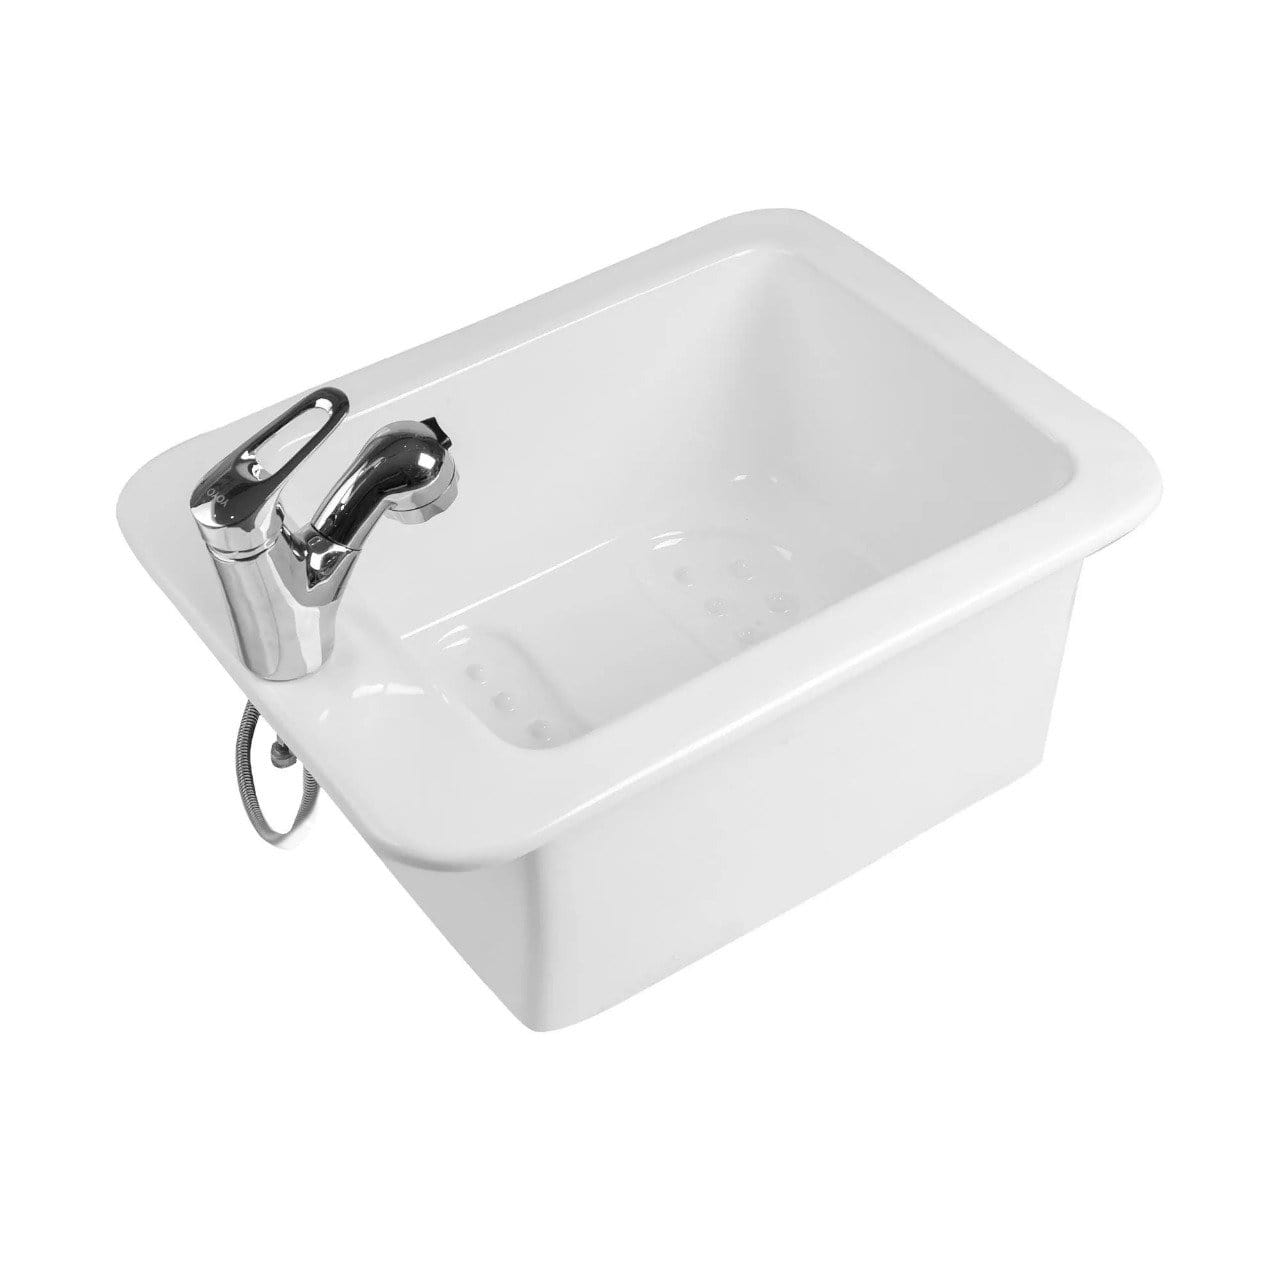 Spa basin, Pedicure basin, Pedicure, Foot soak, Foot care, Salon